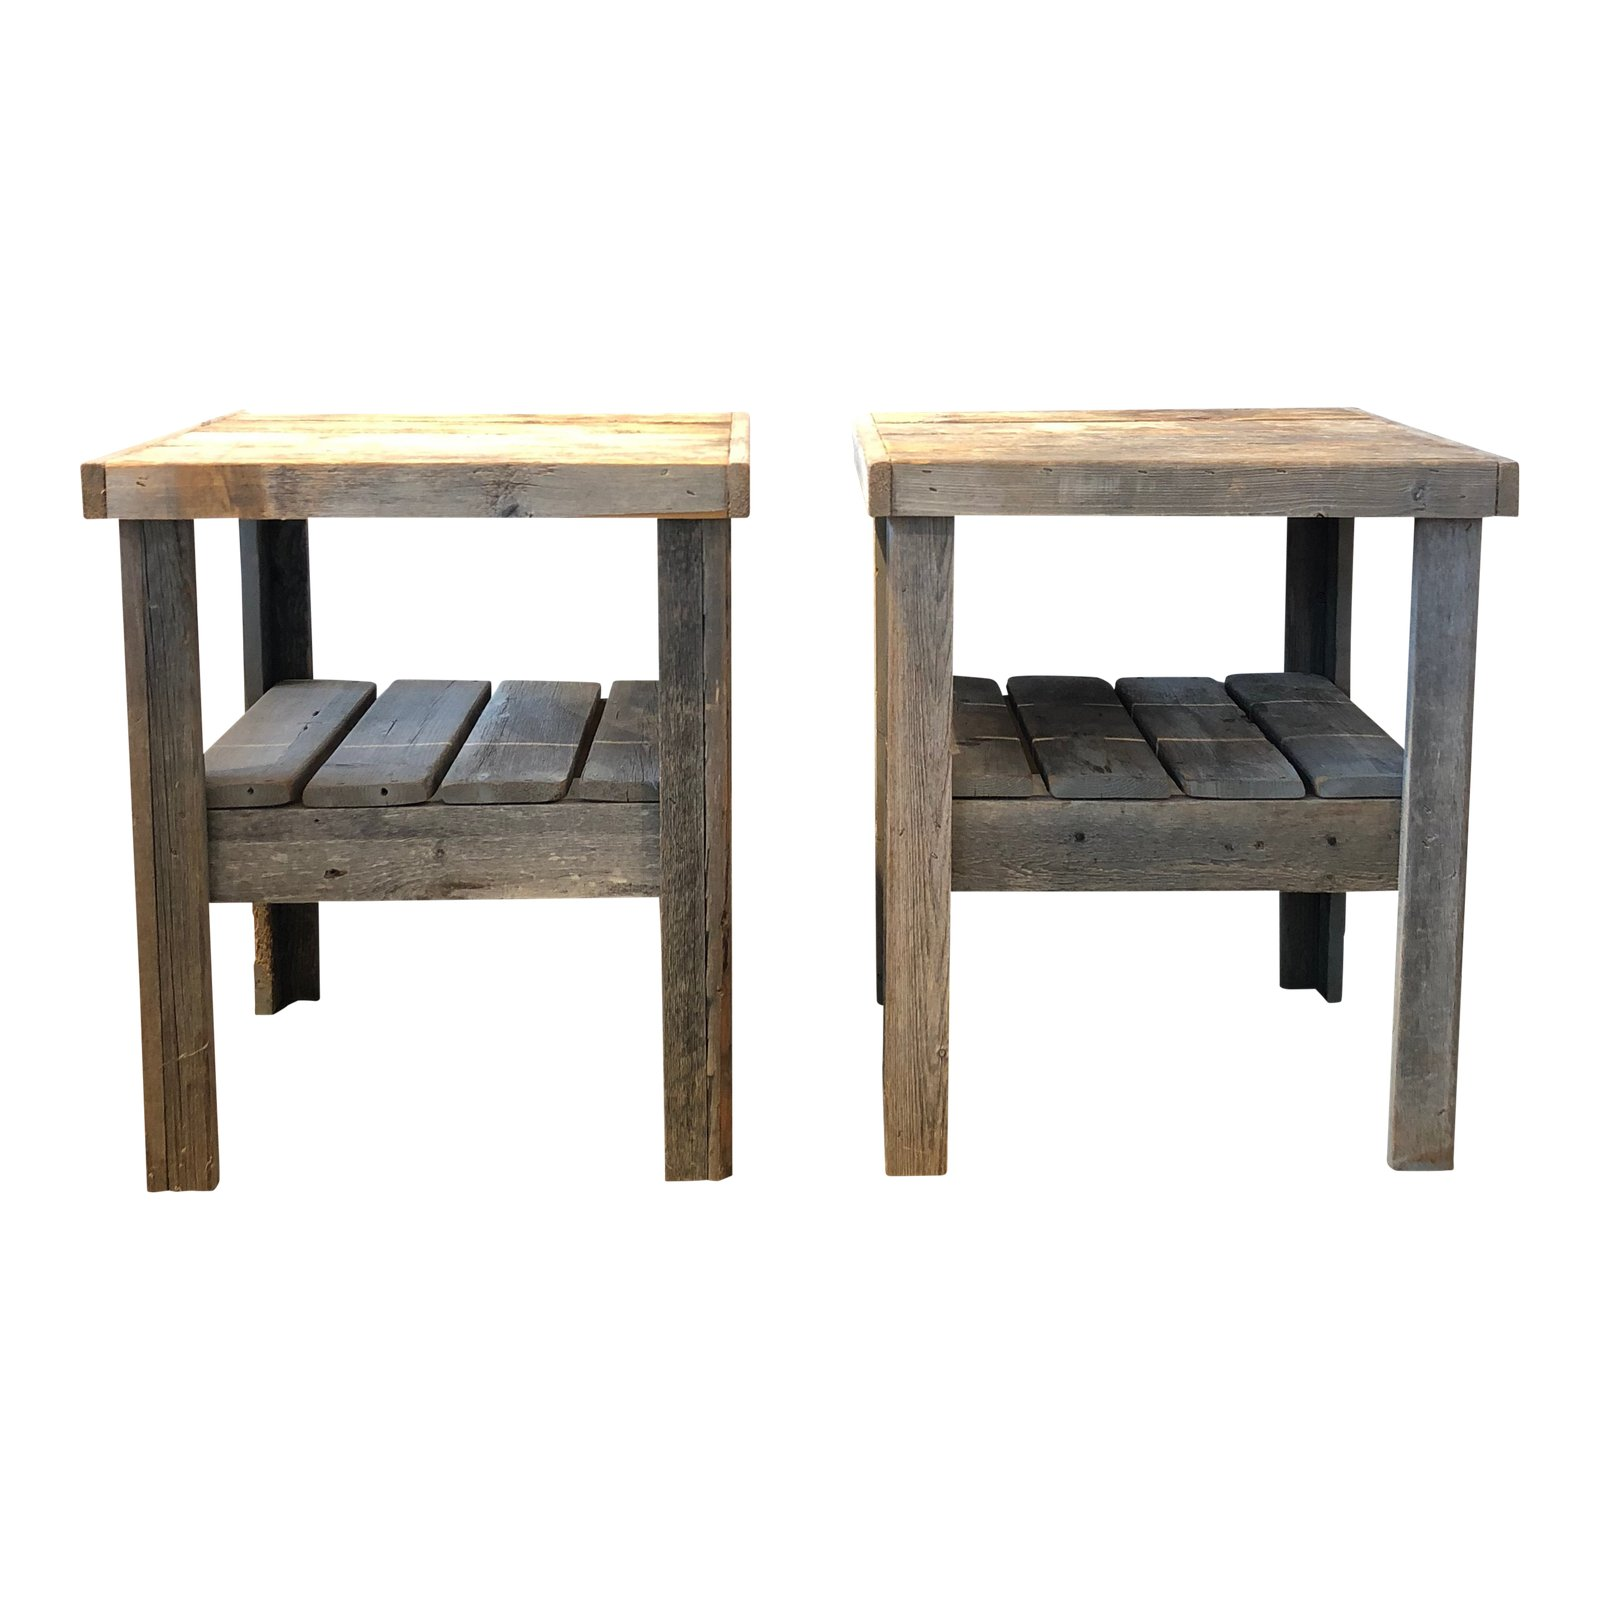 excellent century pair primitive wood side tables decaso outdoor table small drop leaf coffee marble bedside target living room lounge chair replica sofa long centerpieces west